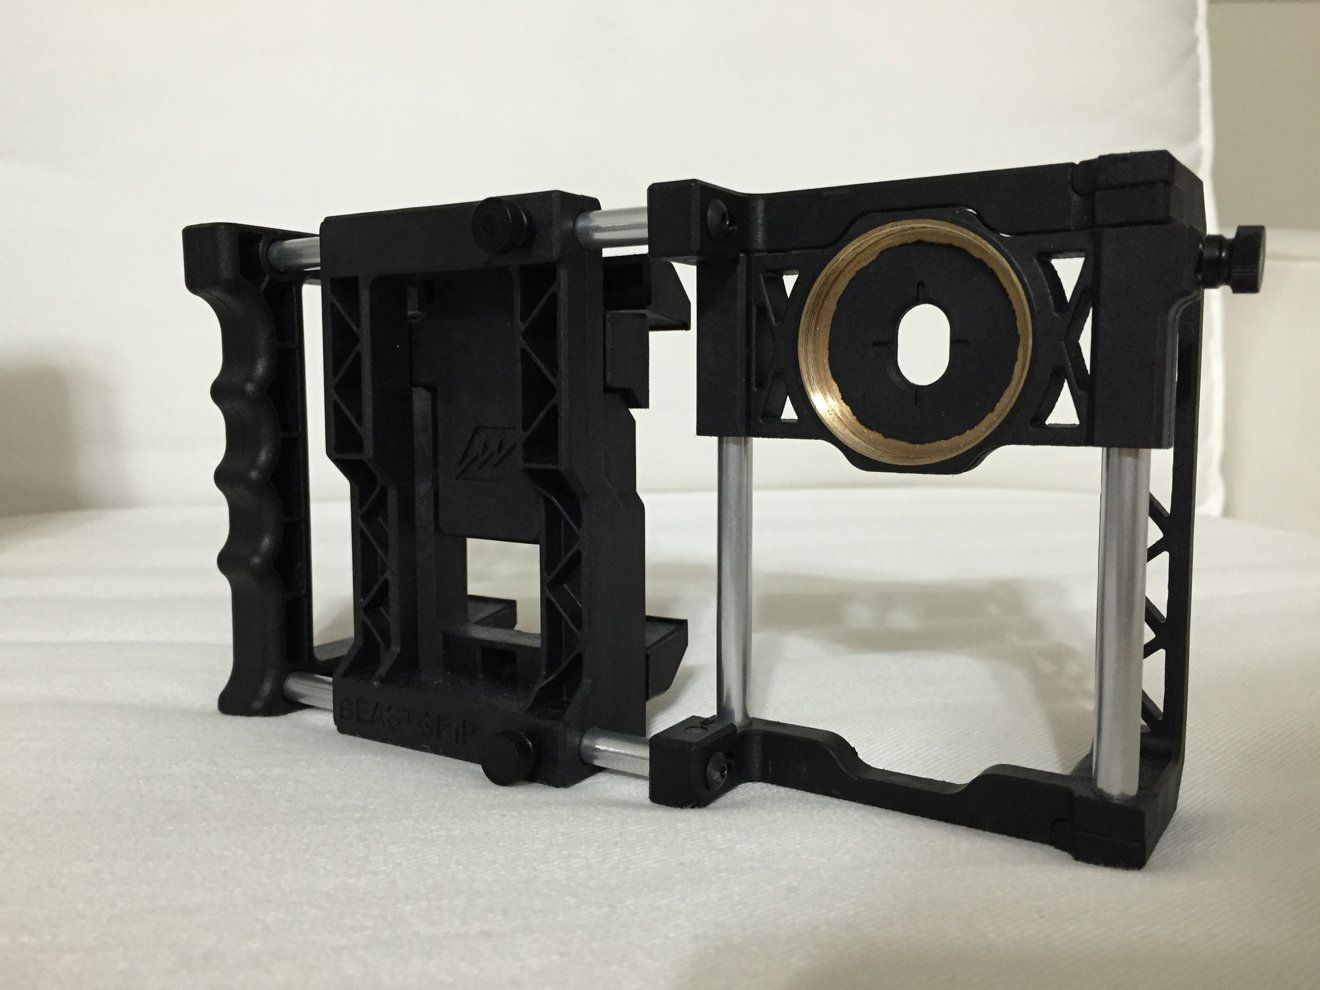 First look: Beastgrip Pro lens adapter platform for Apple's iPhone